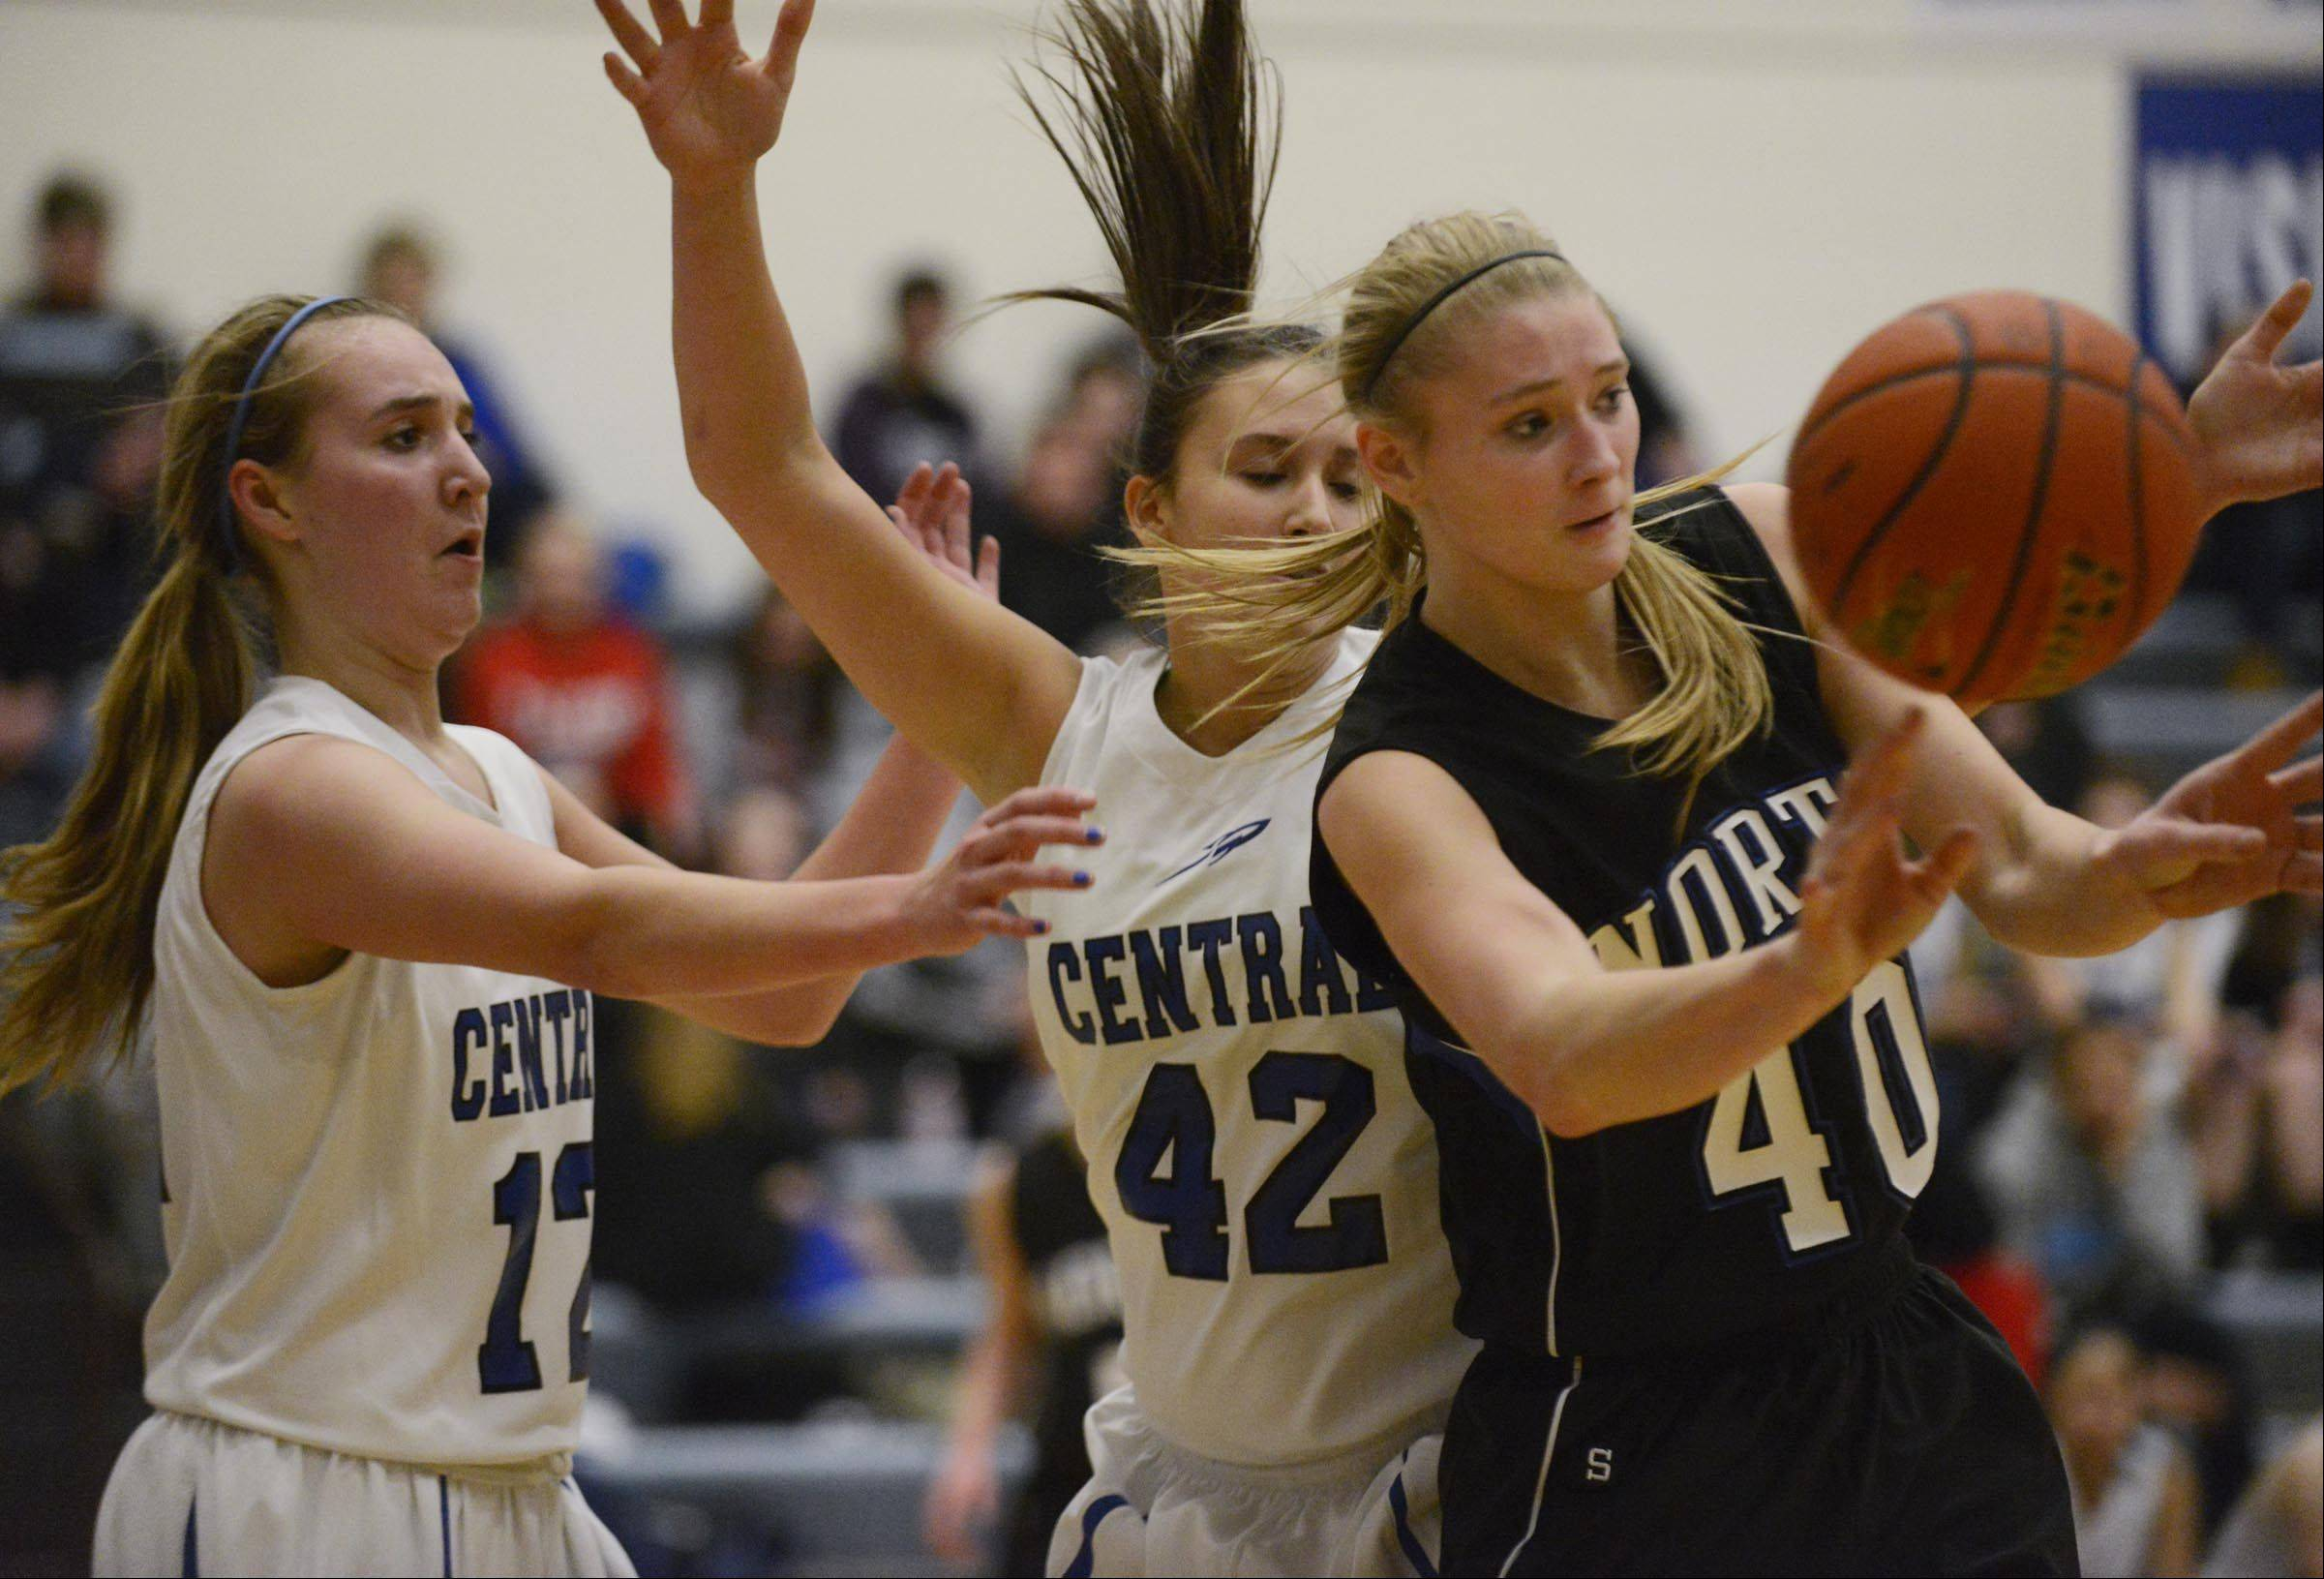 St. Charles North's Morgan Rosencrants passes the ball back out after running into the defense of Burlington Central's Shelby Holt, left, and Alison Colby Tuesday in Burlington.